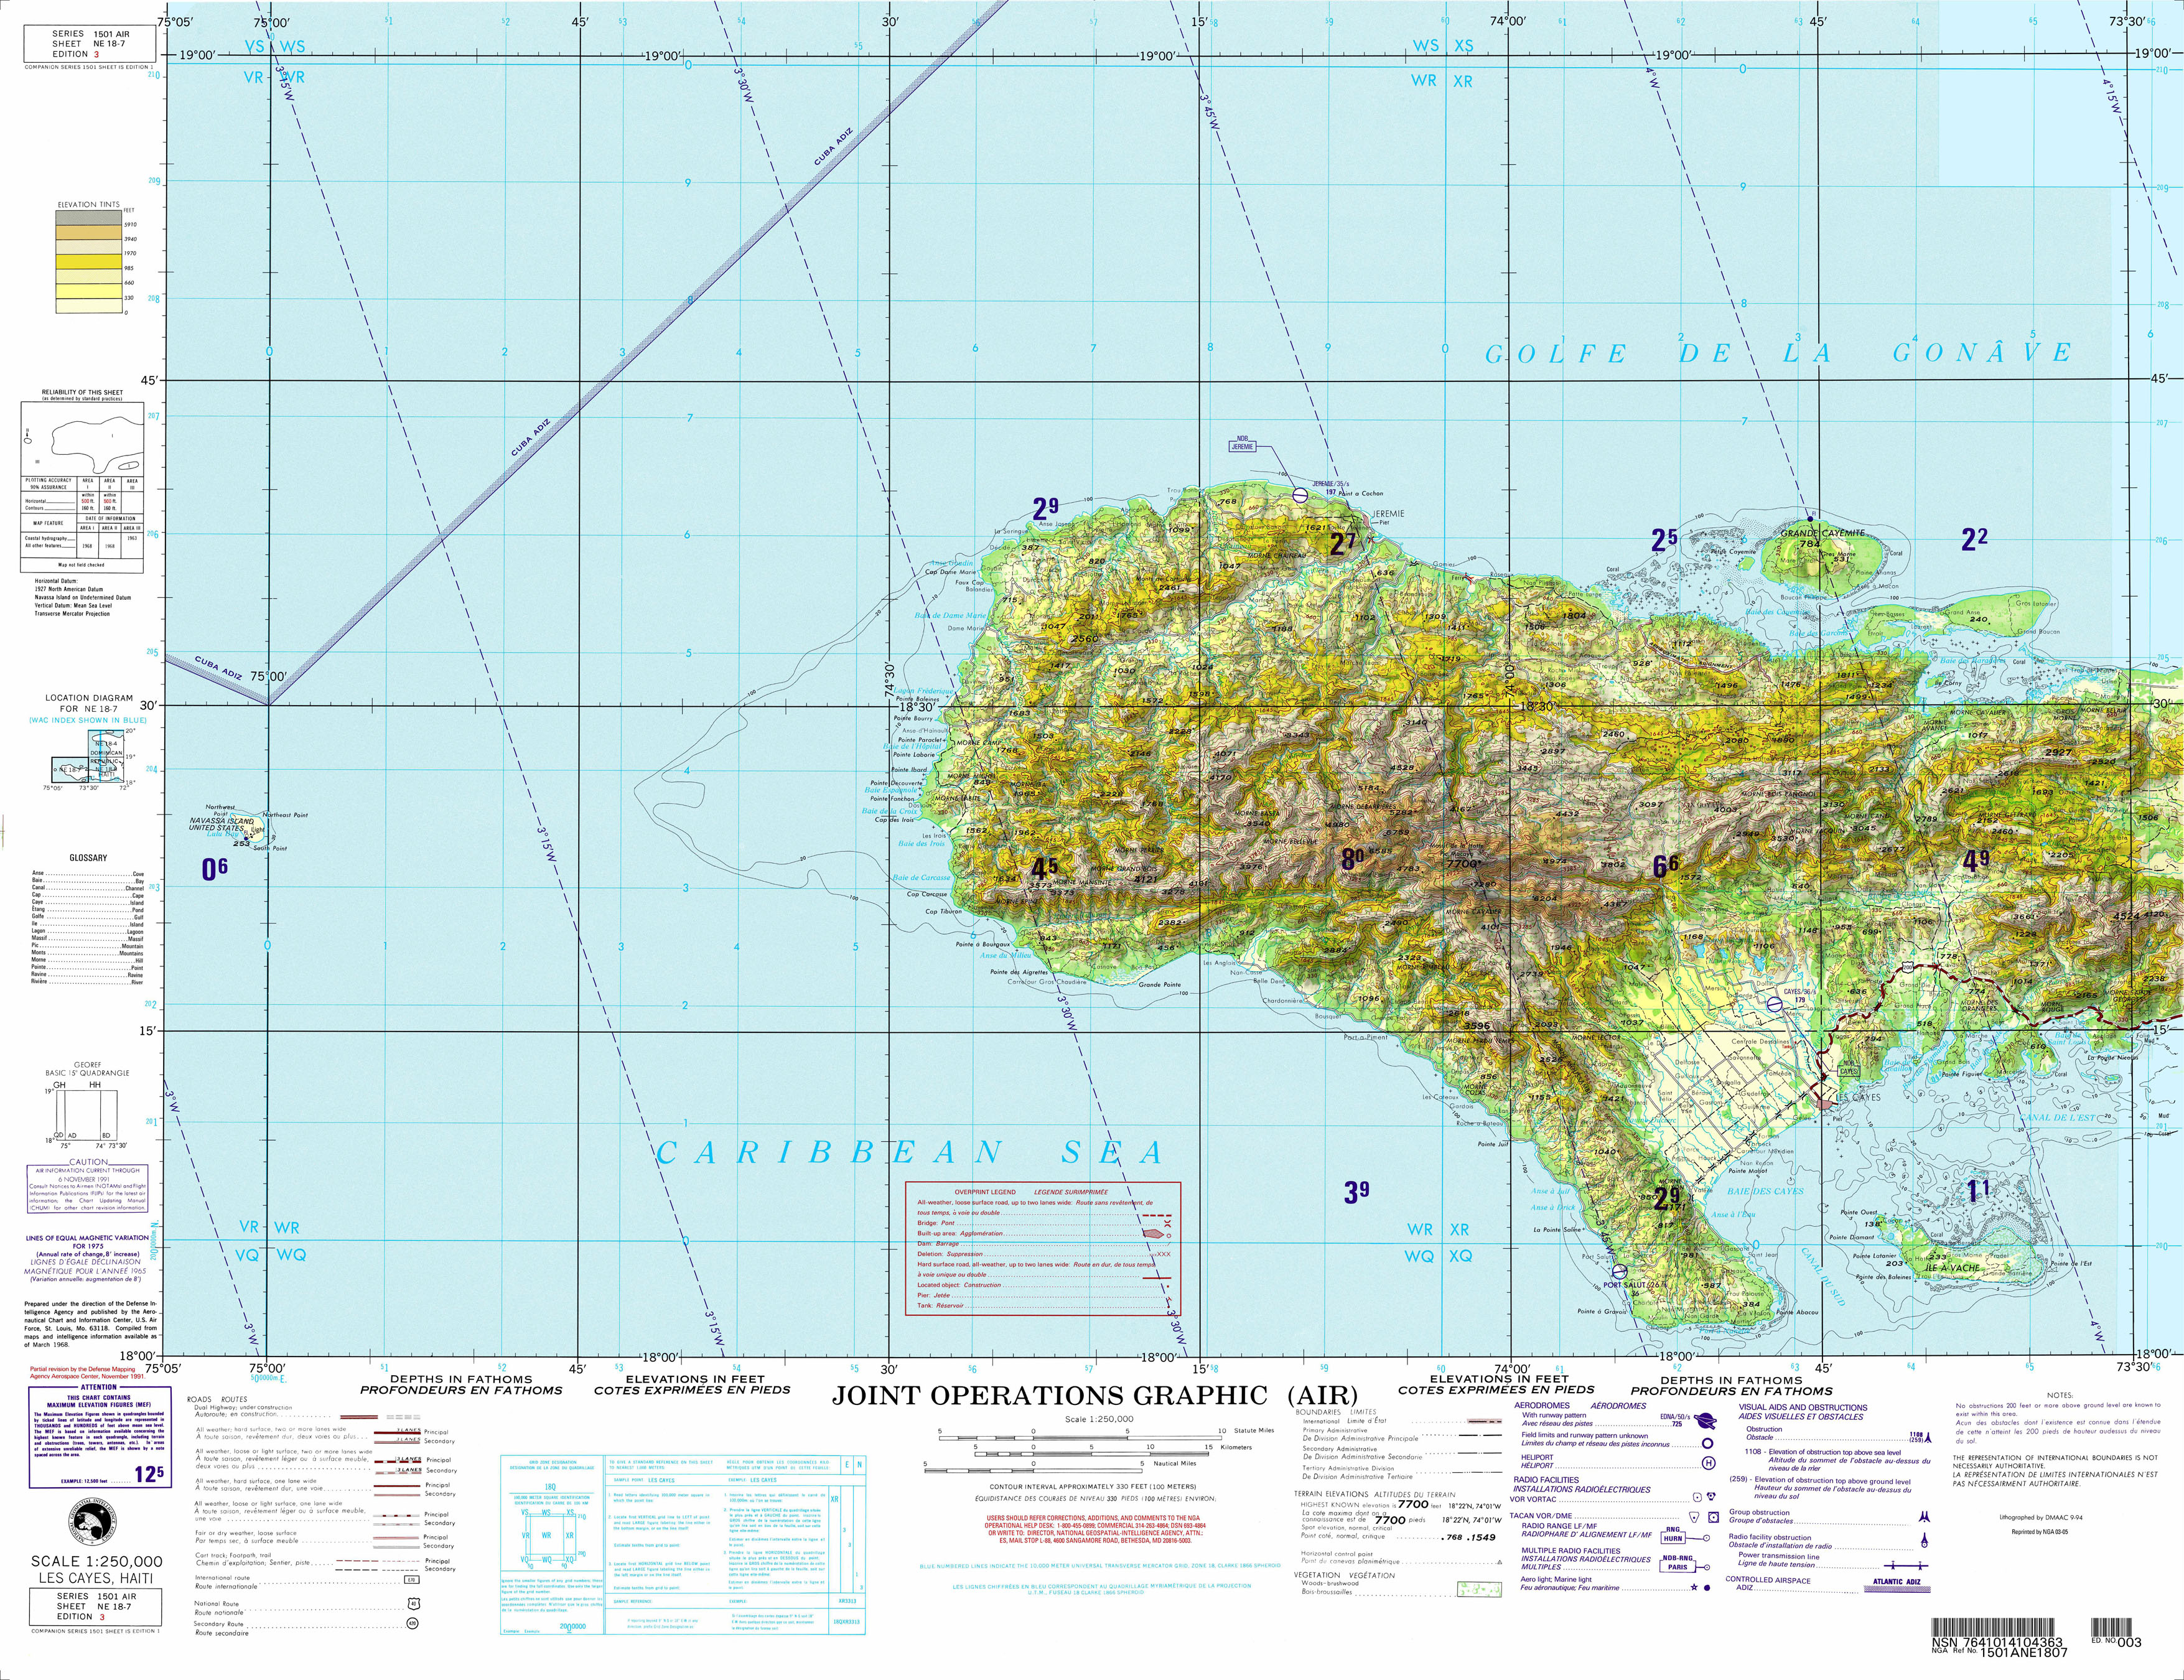 Haiti Joint Operations Graphic PerryCastañeda Map Collection - Haiti clickable map